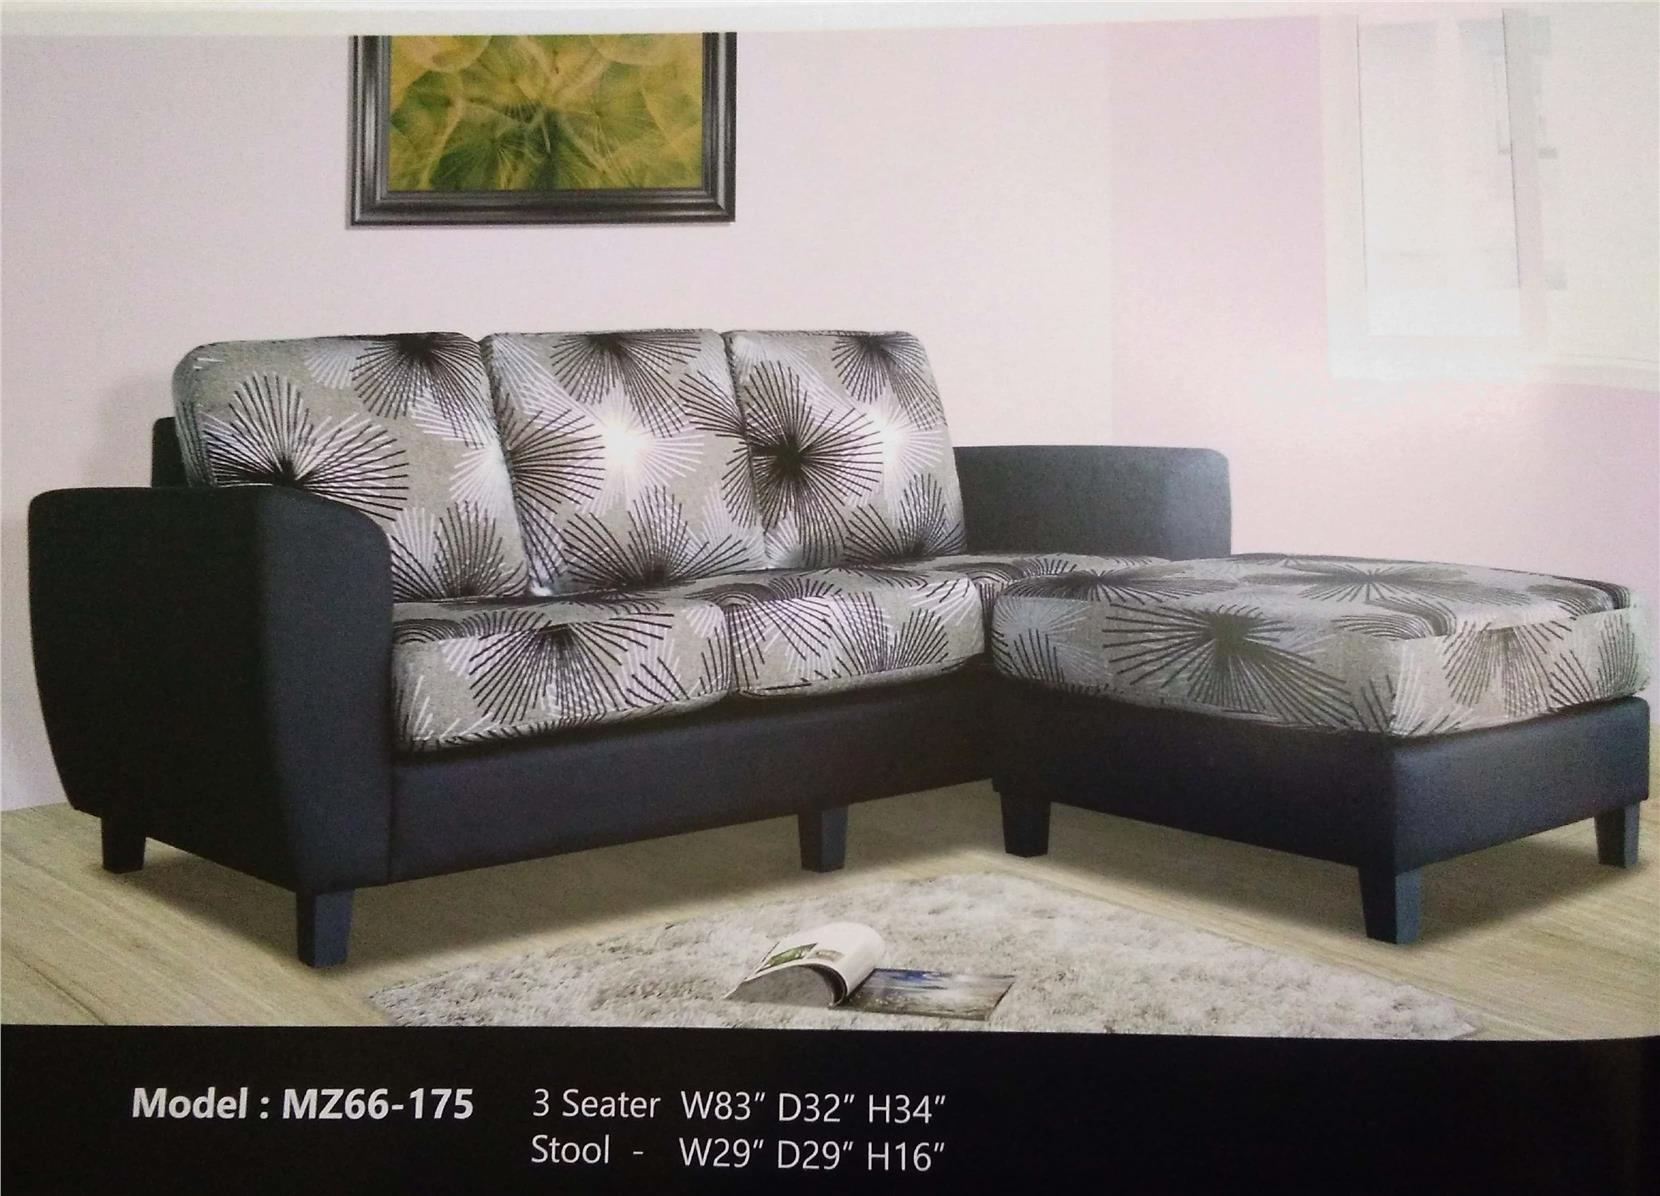 sofa bed malaysia murah western throws for sofas ansuran lshape 66 17 end 1 21 2019 3 15 pm